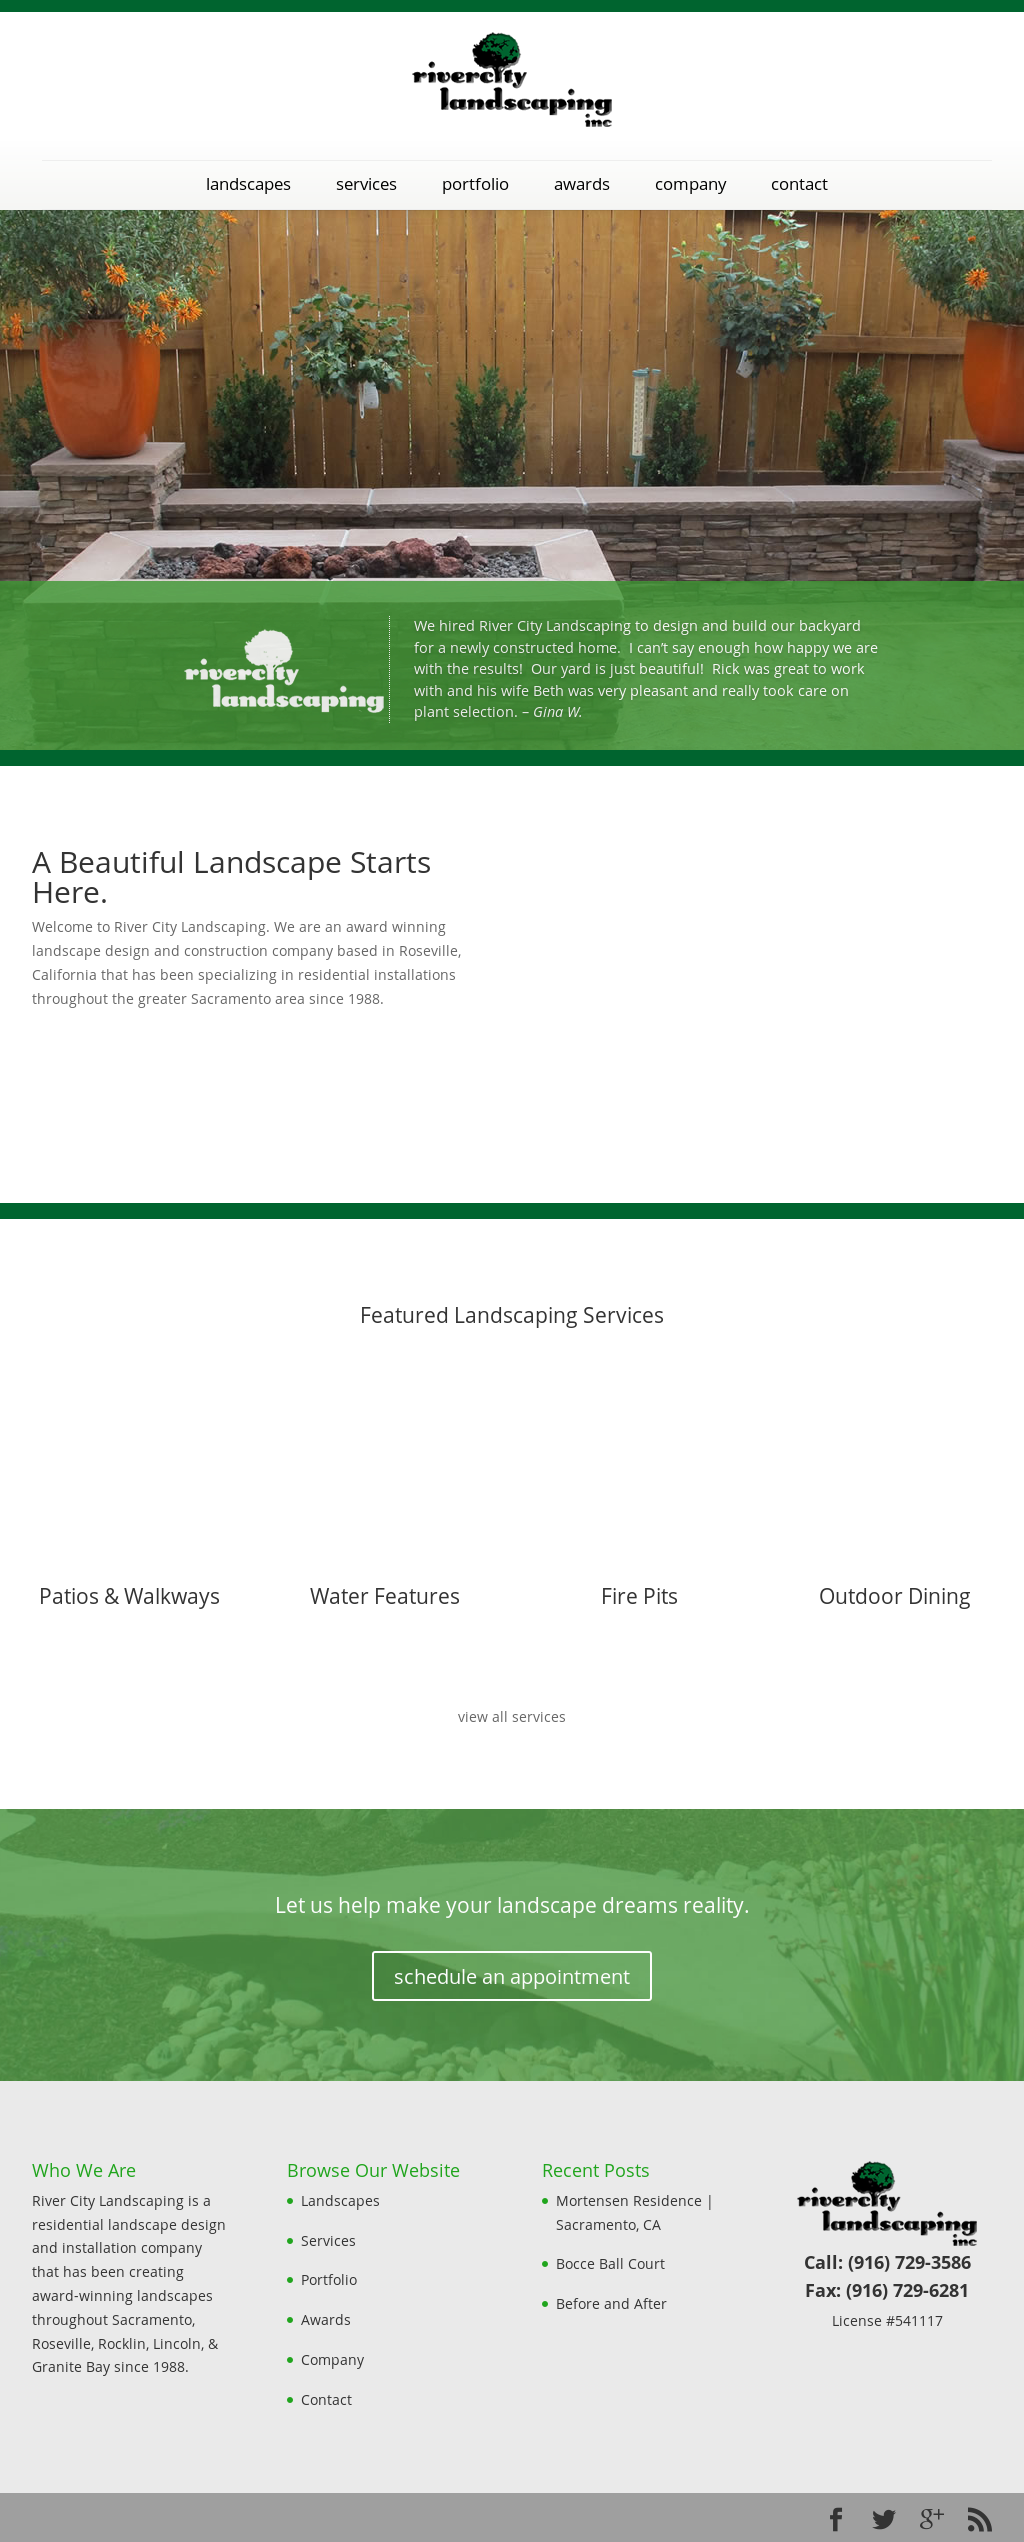 River City Landscaping website history - River City Landscaping Competitors, Revenue And Employees - Owler